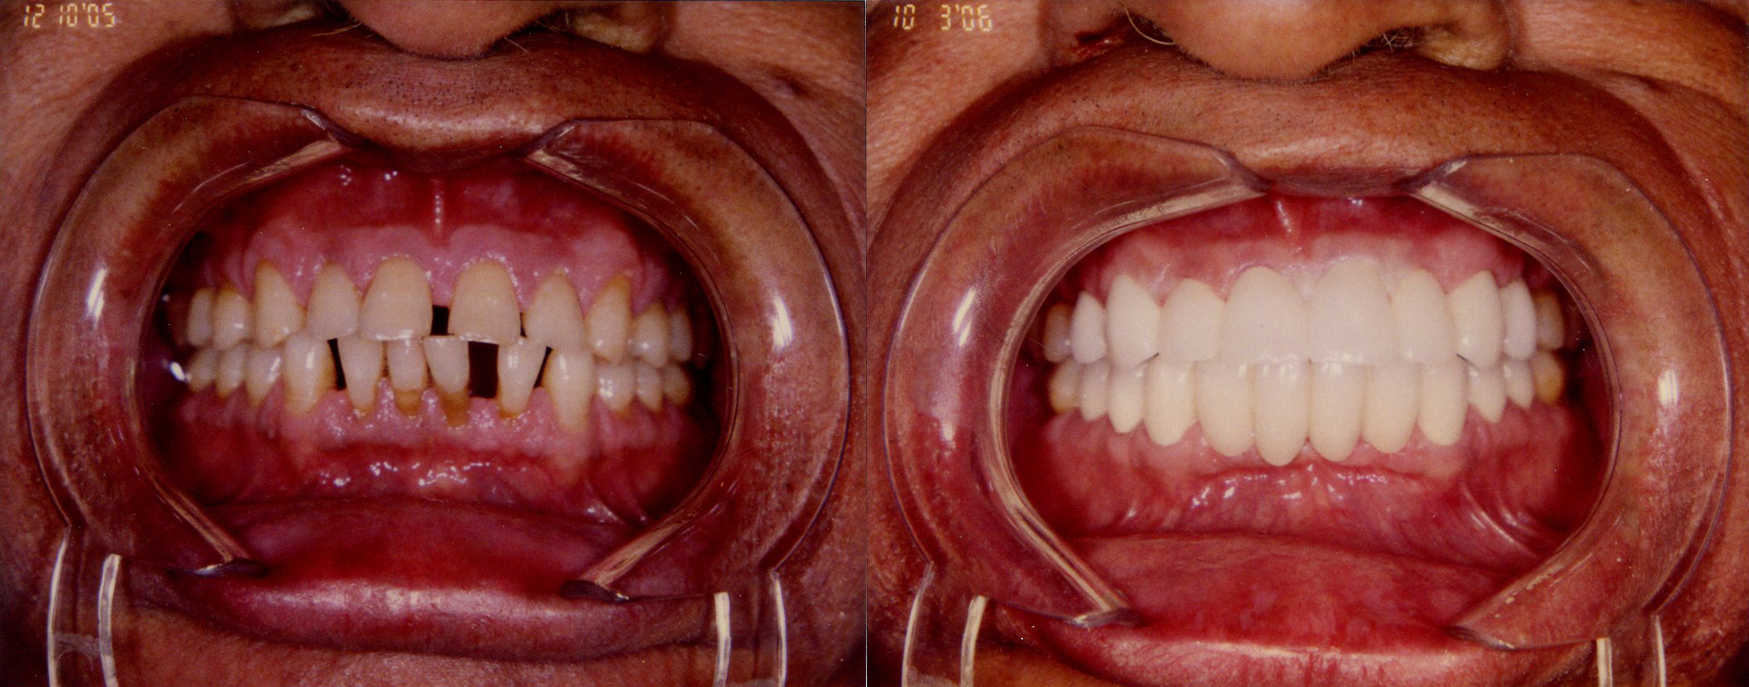 BEFORE AND AFTER FULL MOUTH RECONSTRUCTION